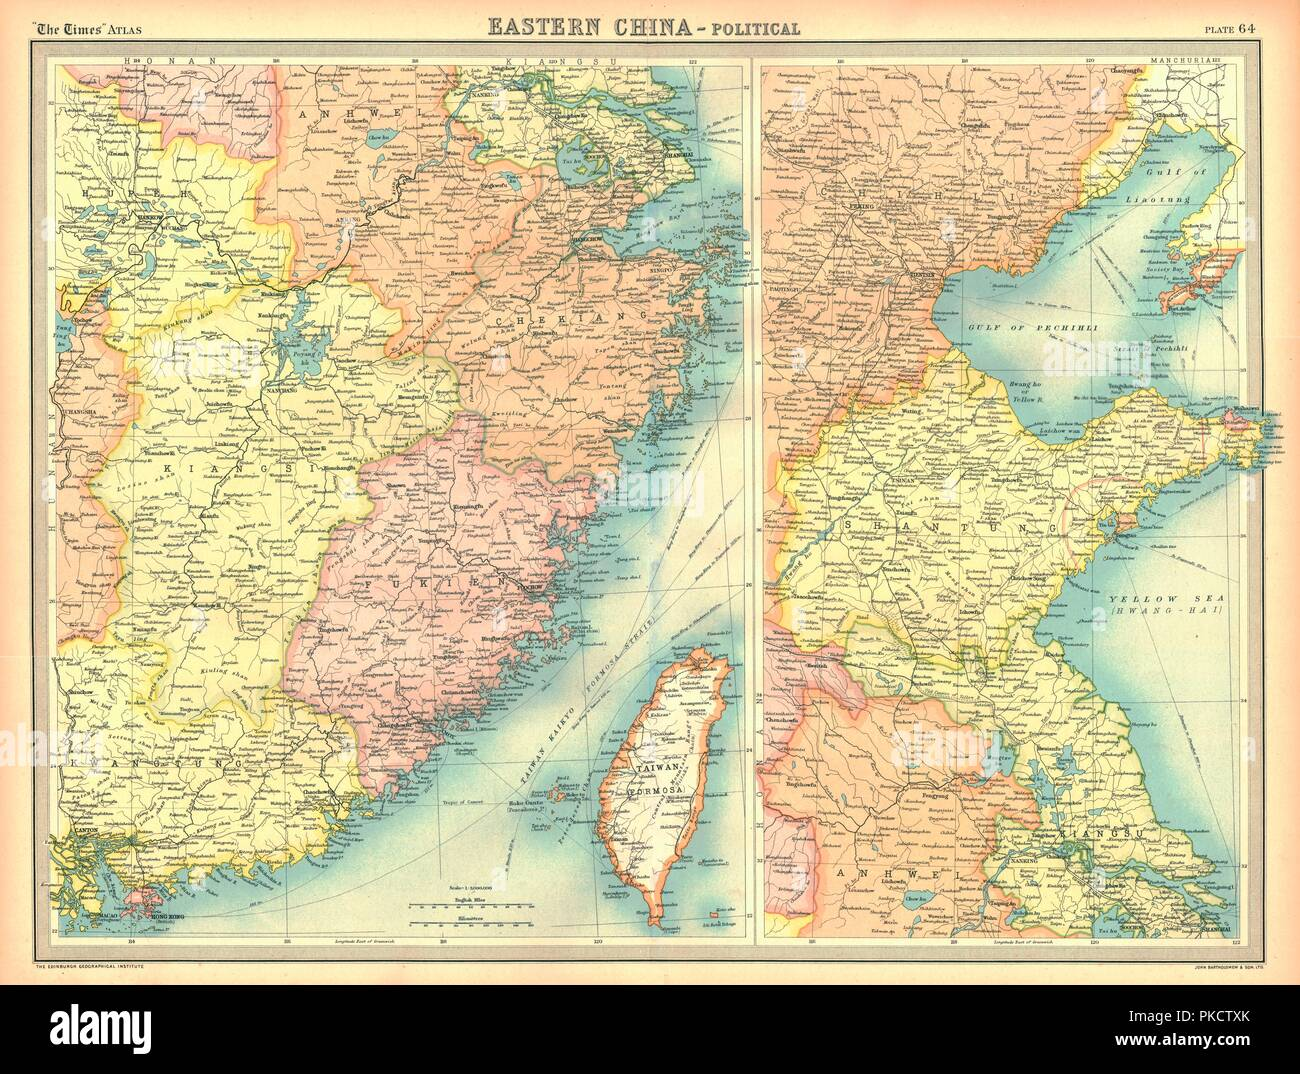 Political map of Eastern China, showing Taiwan, Tianjin and the Bohai Sea. Plate 64 from The Times Atlas. - Stock Image